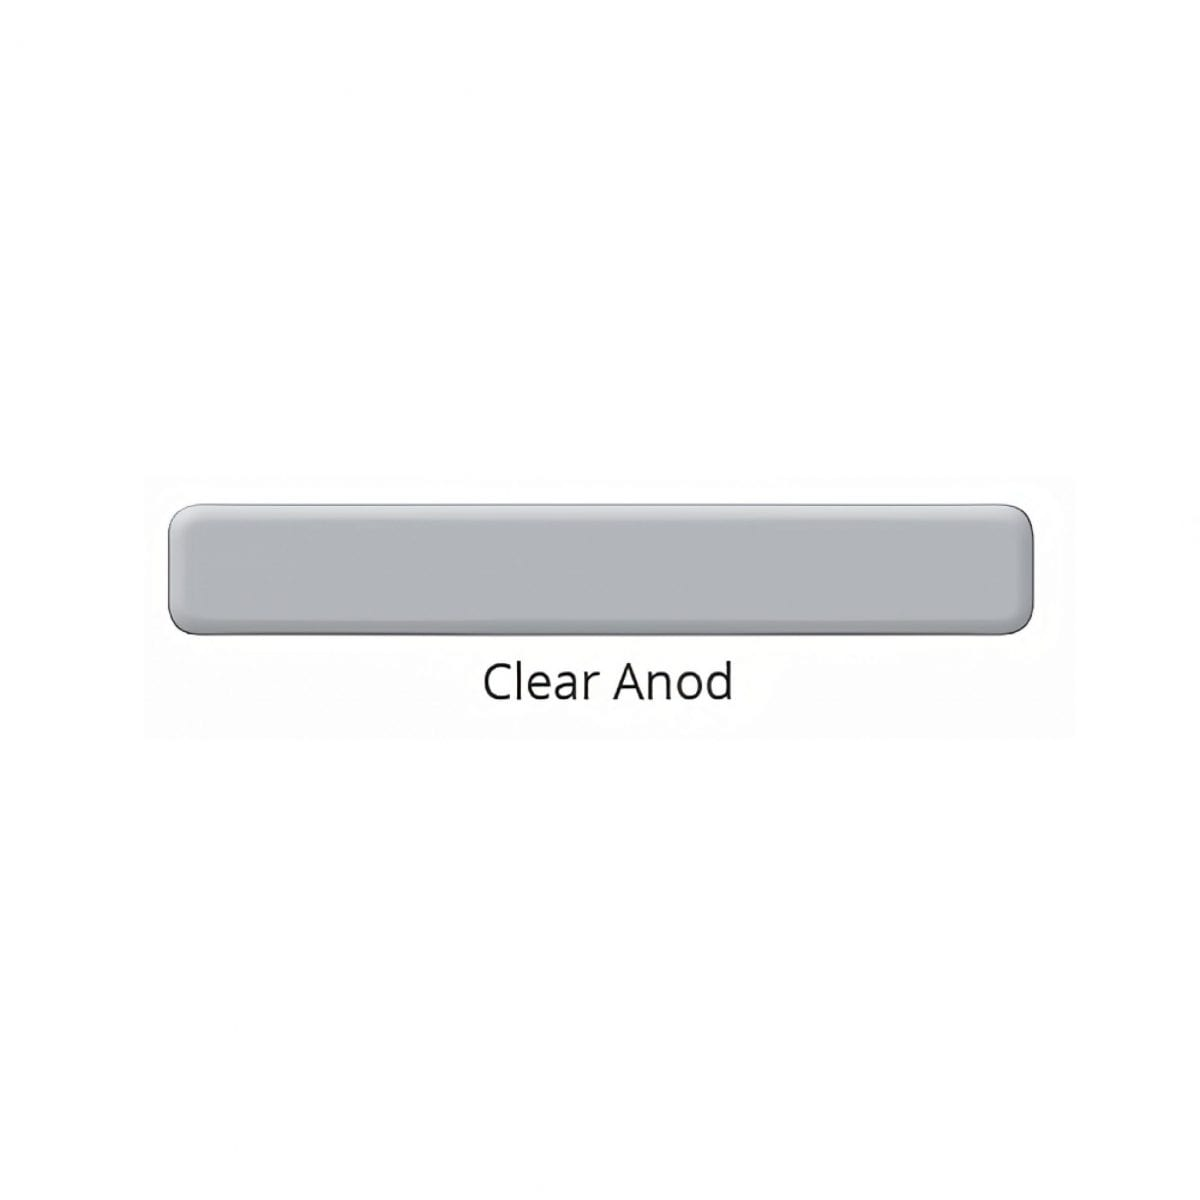 Clear anod color